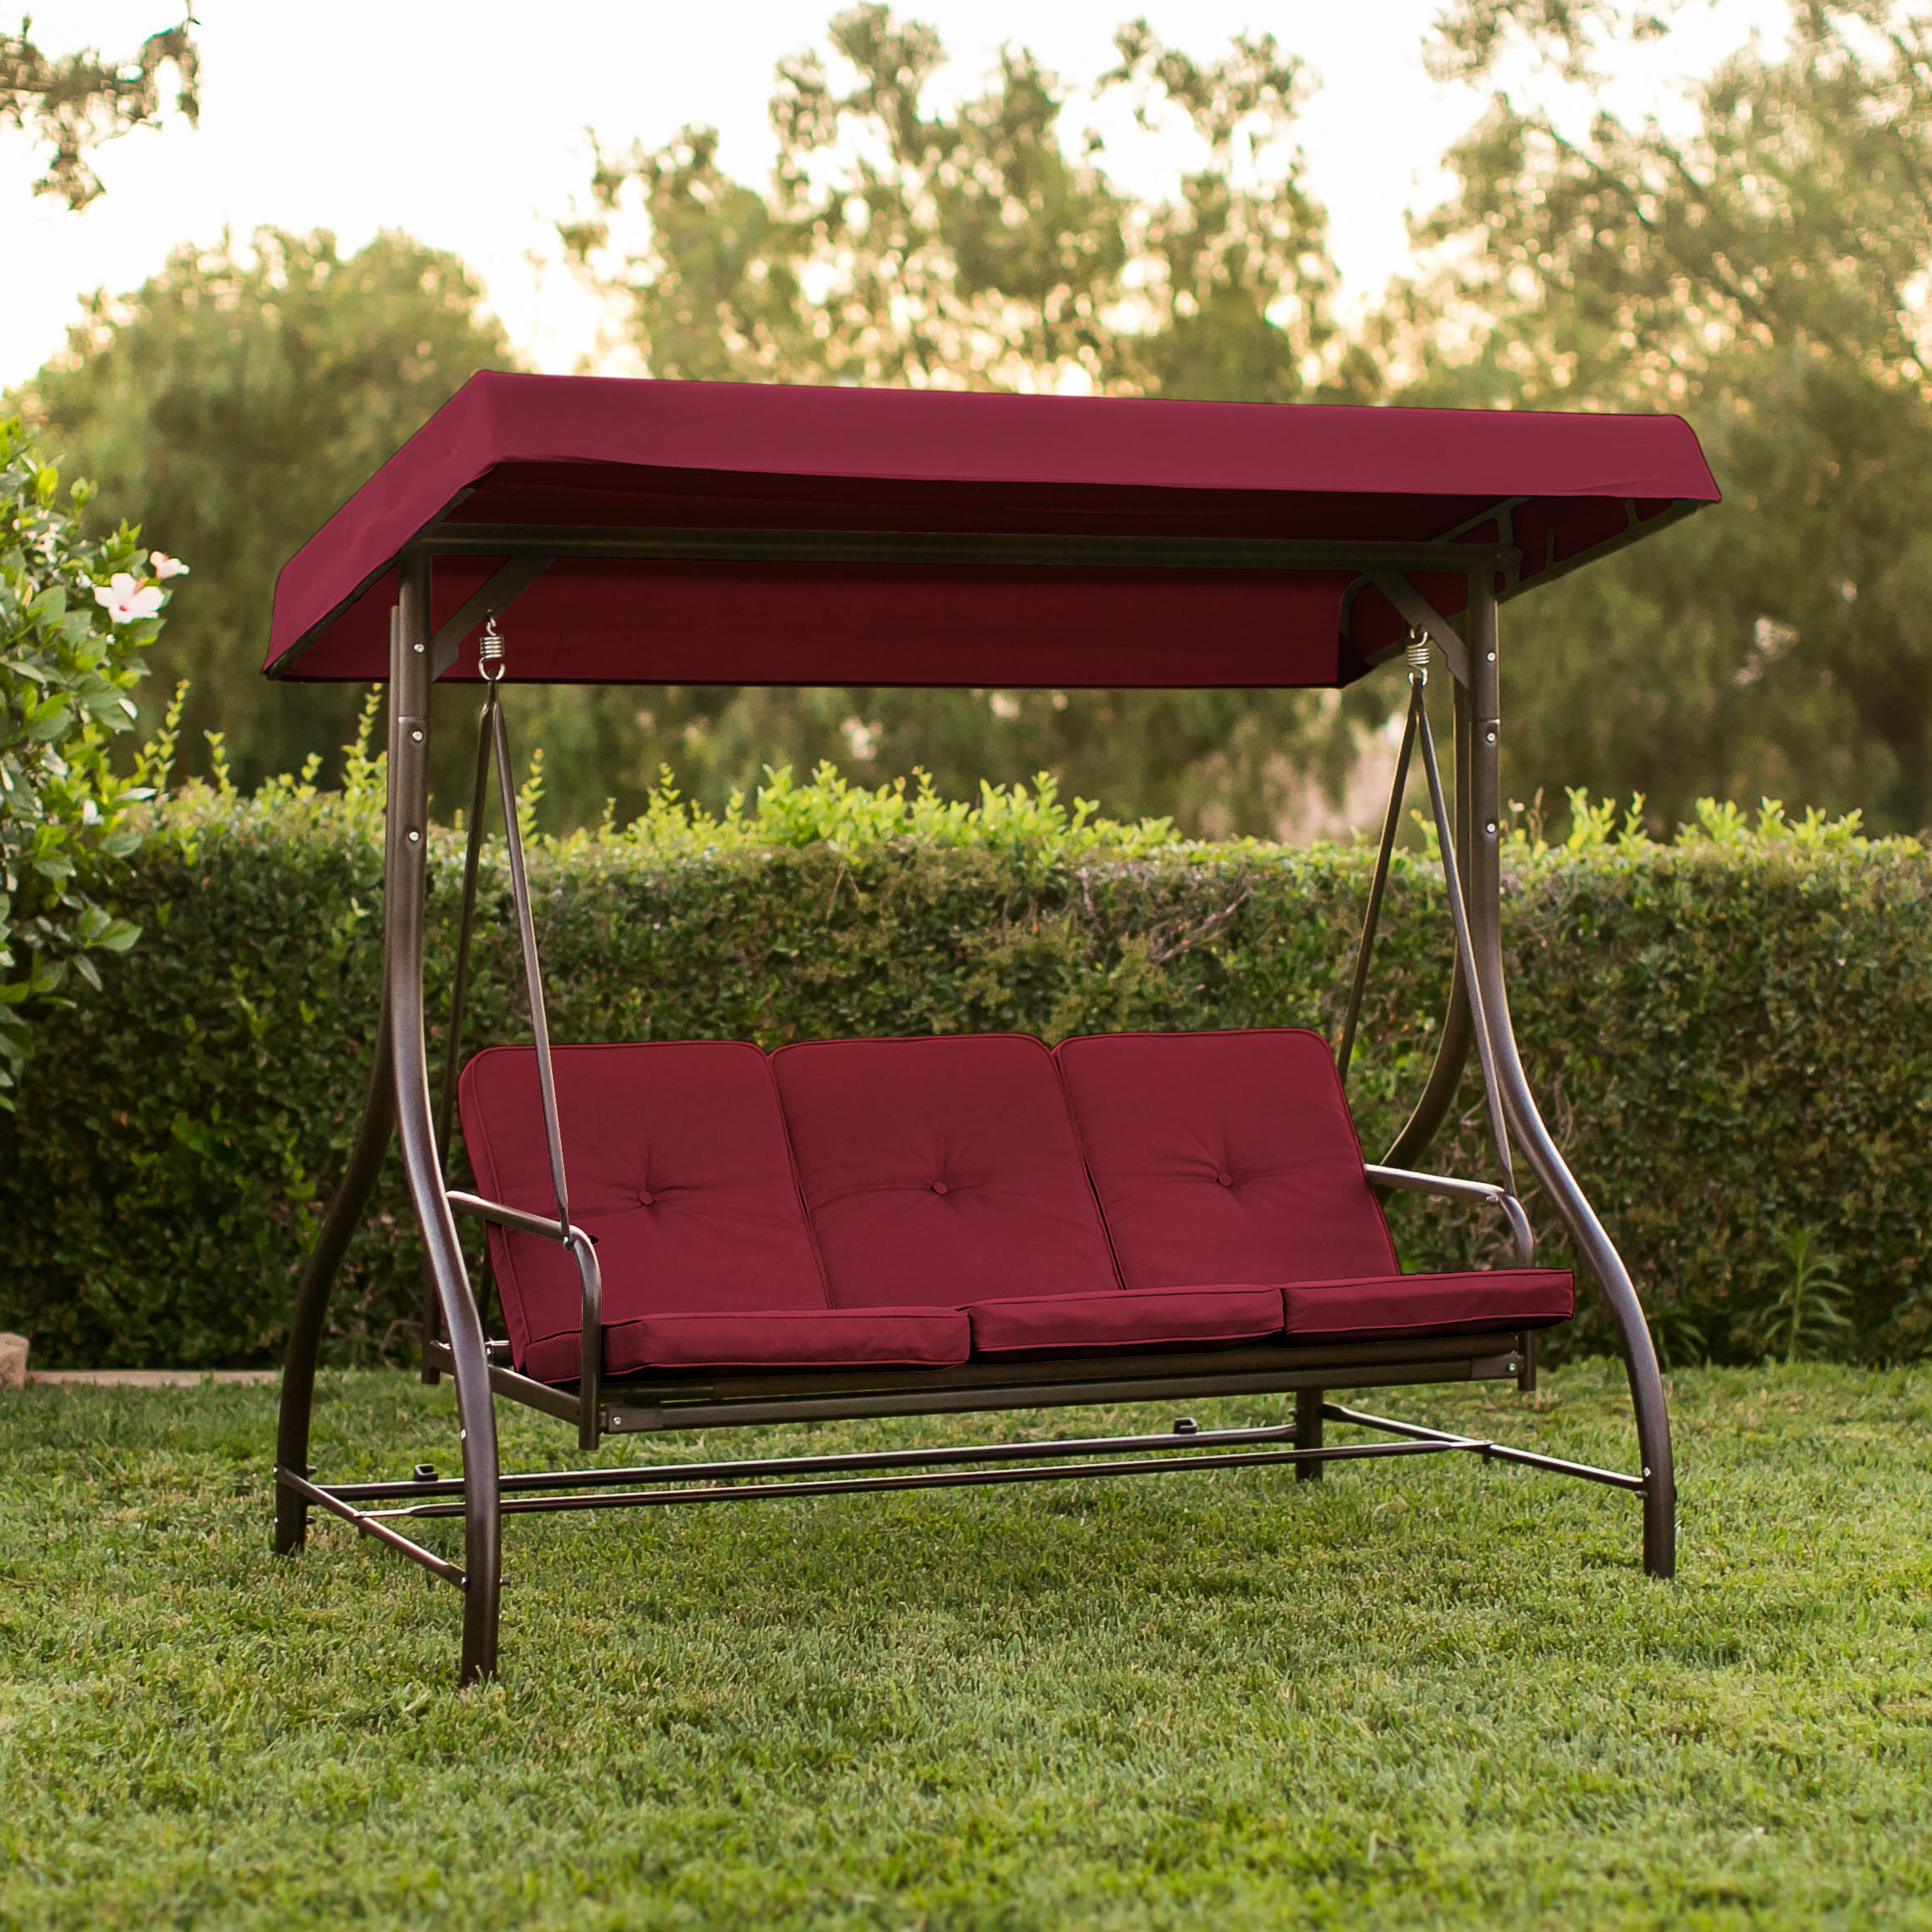 Converting Outdoor Swing Canopy Hammock Seats 3 Patio Deck Furniture  Burgundy Image 2 Of 6